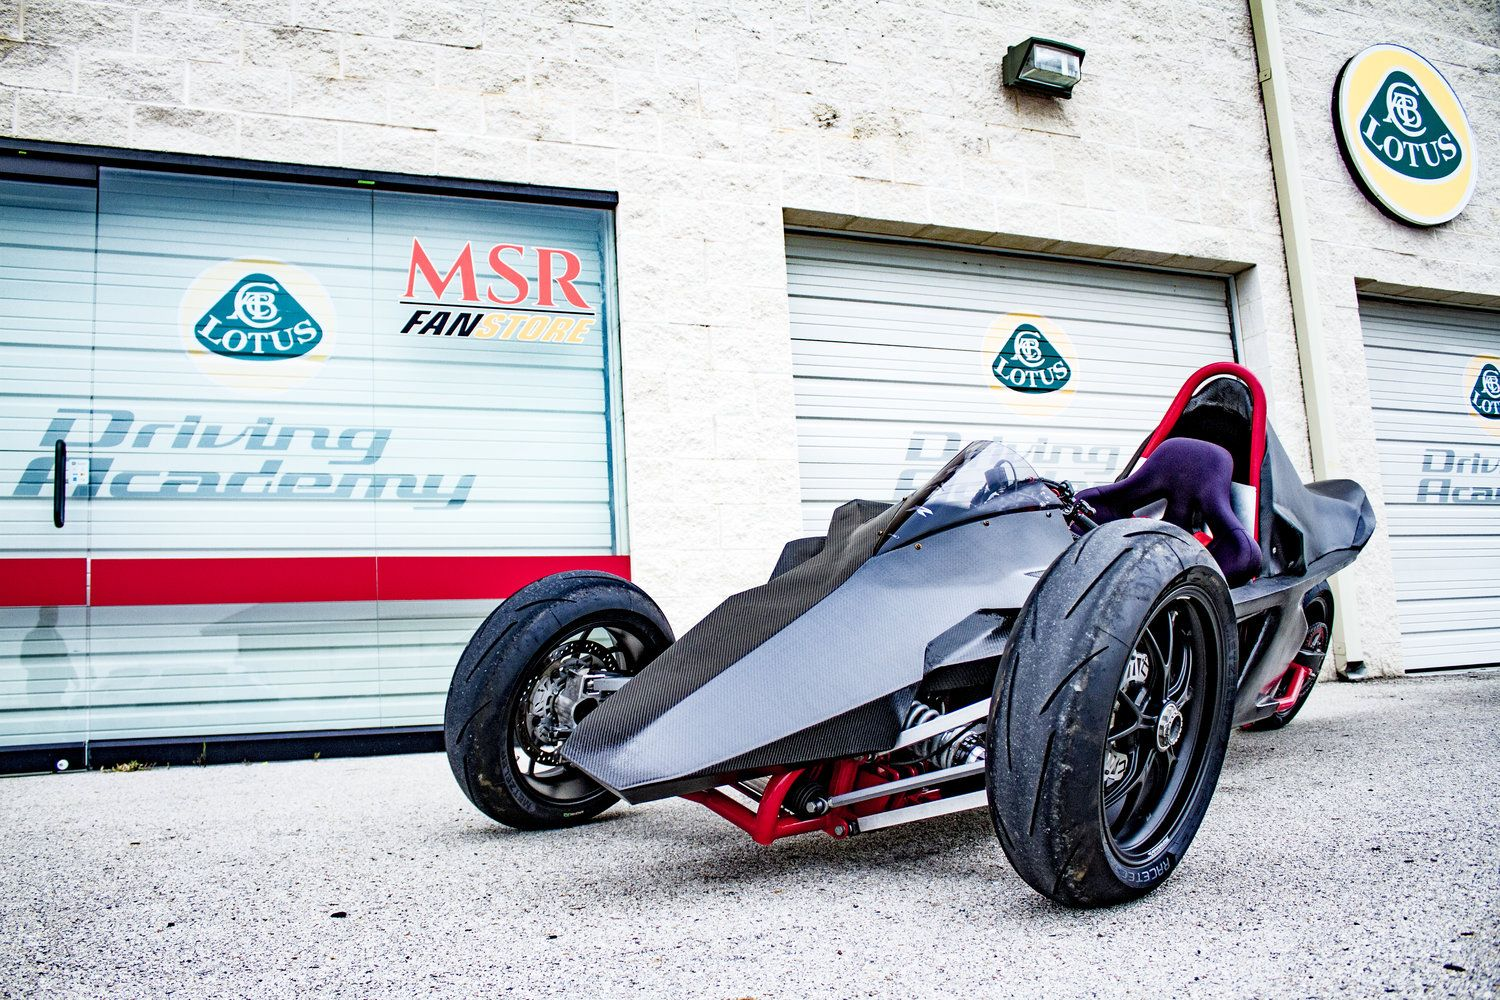 Terracraft Tc2 Yamaha R1 Reverse Leaning Super Trike Capable Of The